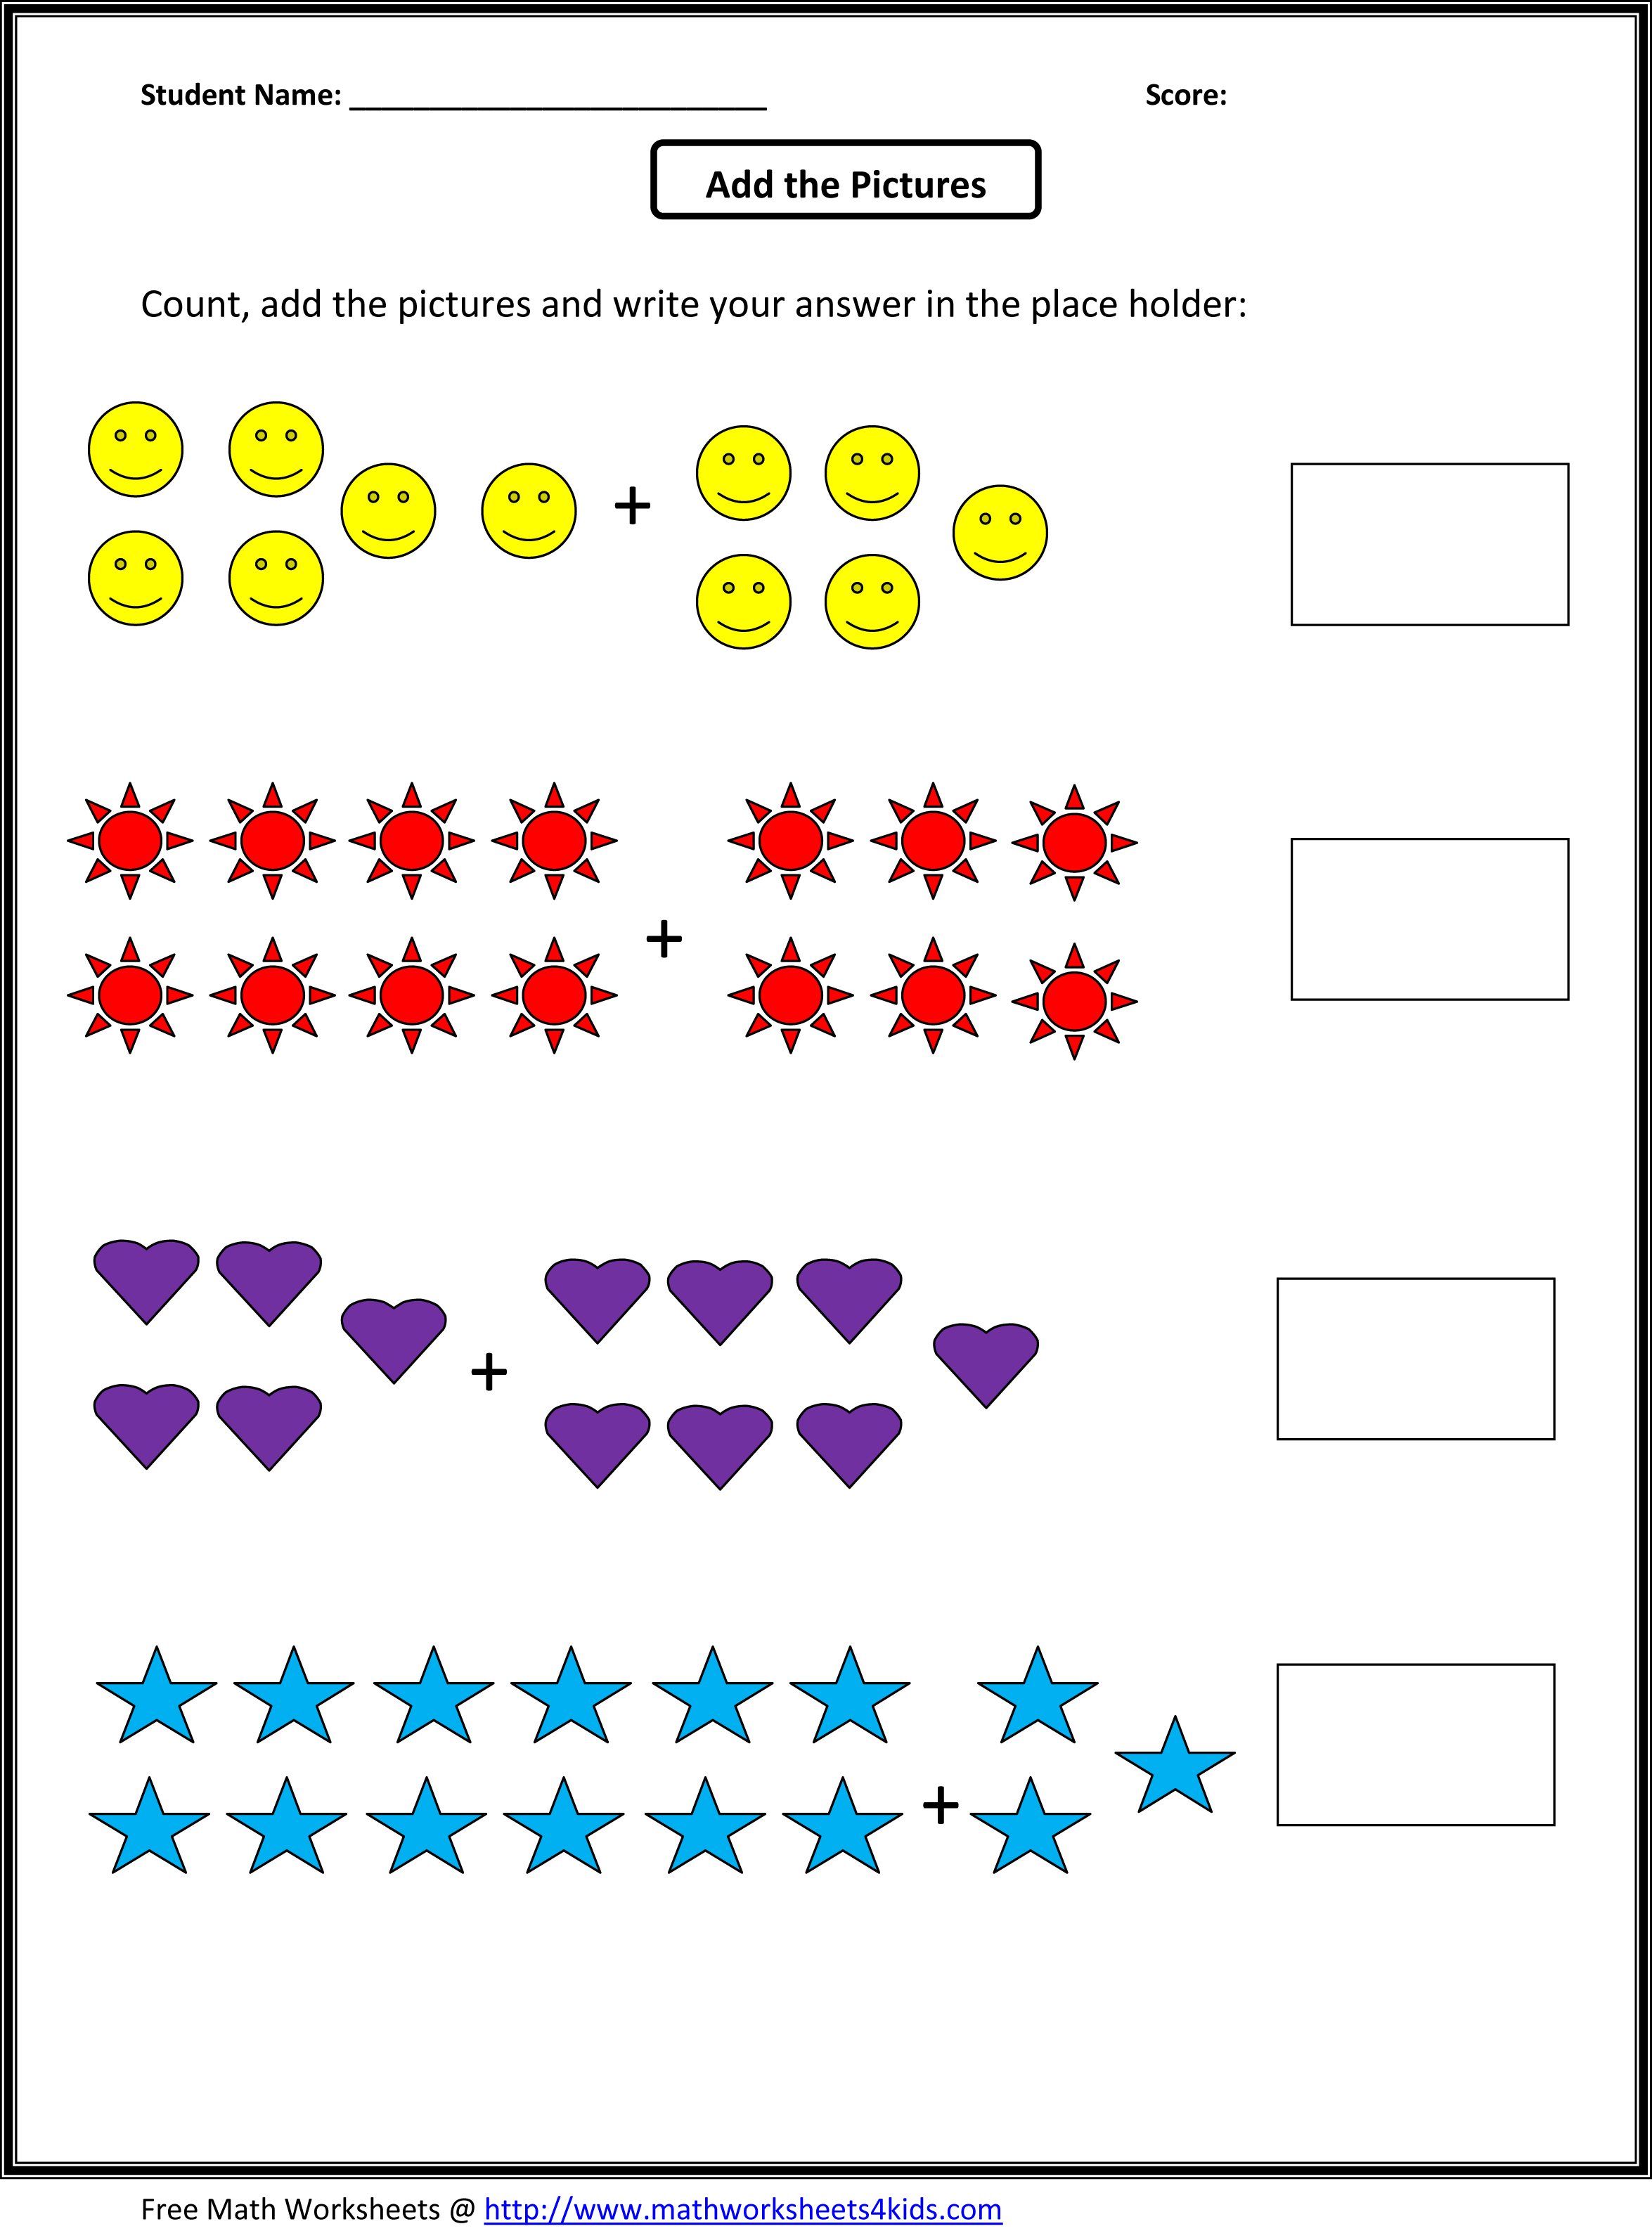 Proatmealus  Marvellous Grade  Maths Worksheet  Reocurent With Lovely Math Worksheets For St Grade Free  Reocurent With Lovely Ratio And Rates Worksheets Also Rotations Worksheet Answers In Addition Adjective Phrase Worksheet And Character Creation Worksheet As Well As First Grade Worksheets Pdf Additionally Ordering Decimals Worksheets From Reocurentcom With Proatmealus  Lovely Grade  Maths Worksheet  Reocurent With Lovely Math Worksheets For St Grade Free  Reocurent And Marvellous Ratio And Rates Worksheets Also Rotations Worksheet Answers In Addition Adjective Phrase Worksheet From Reocurentcom